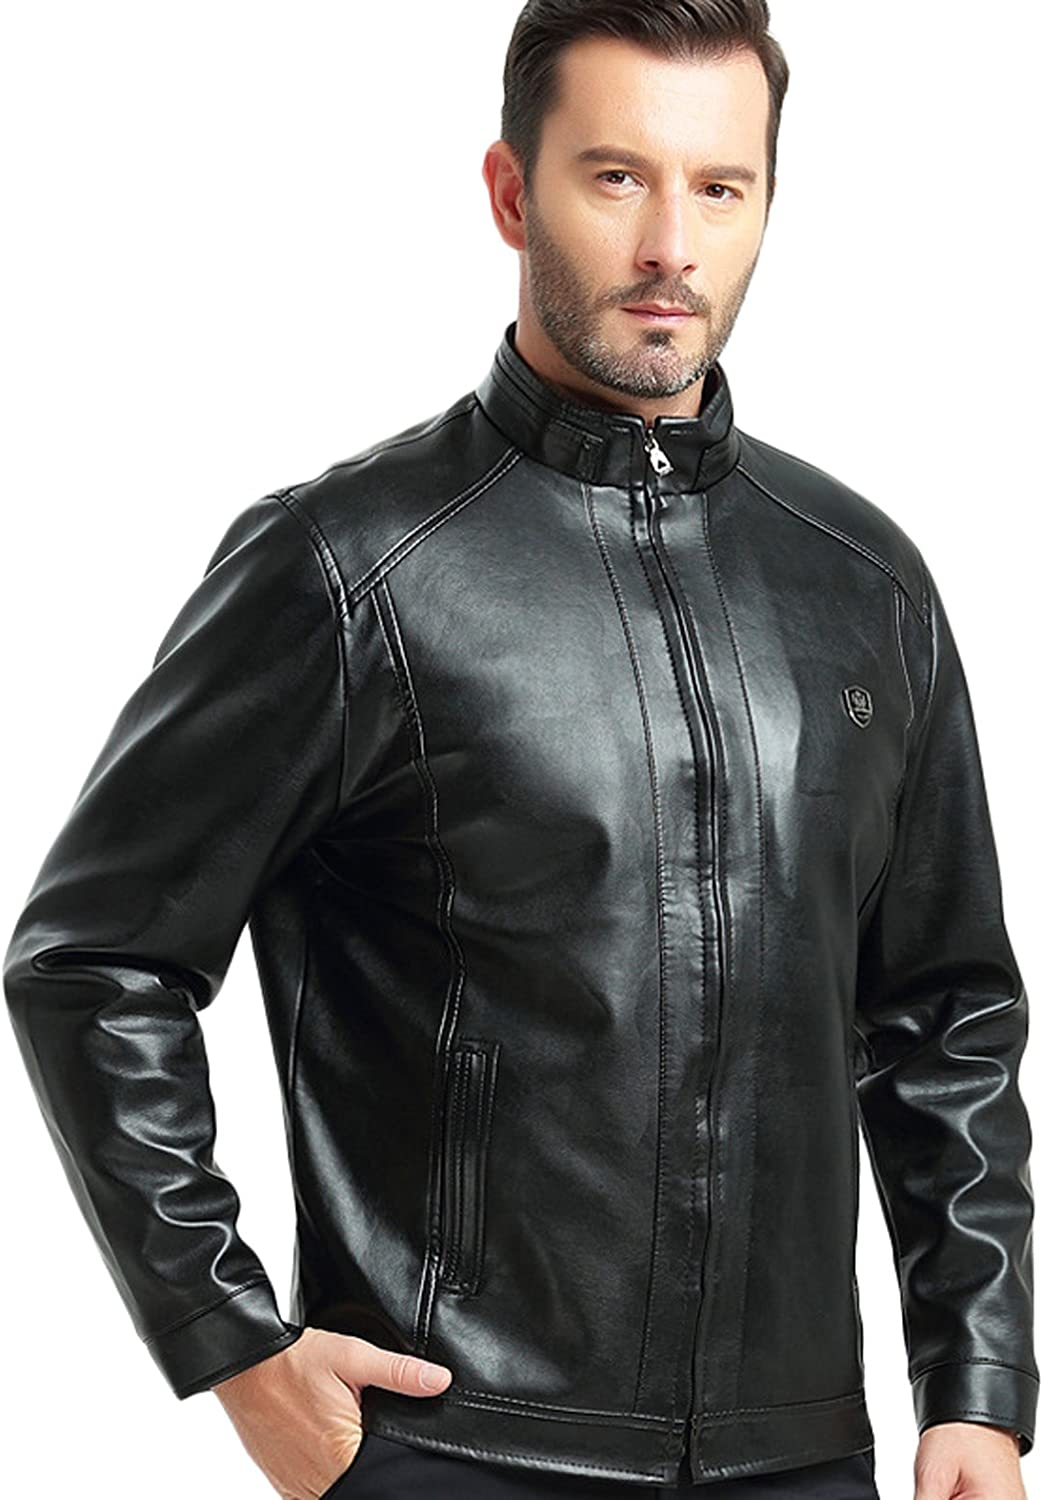 Youhan Men's Casual Fleece Lined Jacket Faux PU Leather mart Outlet sale feature